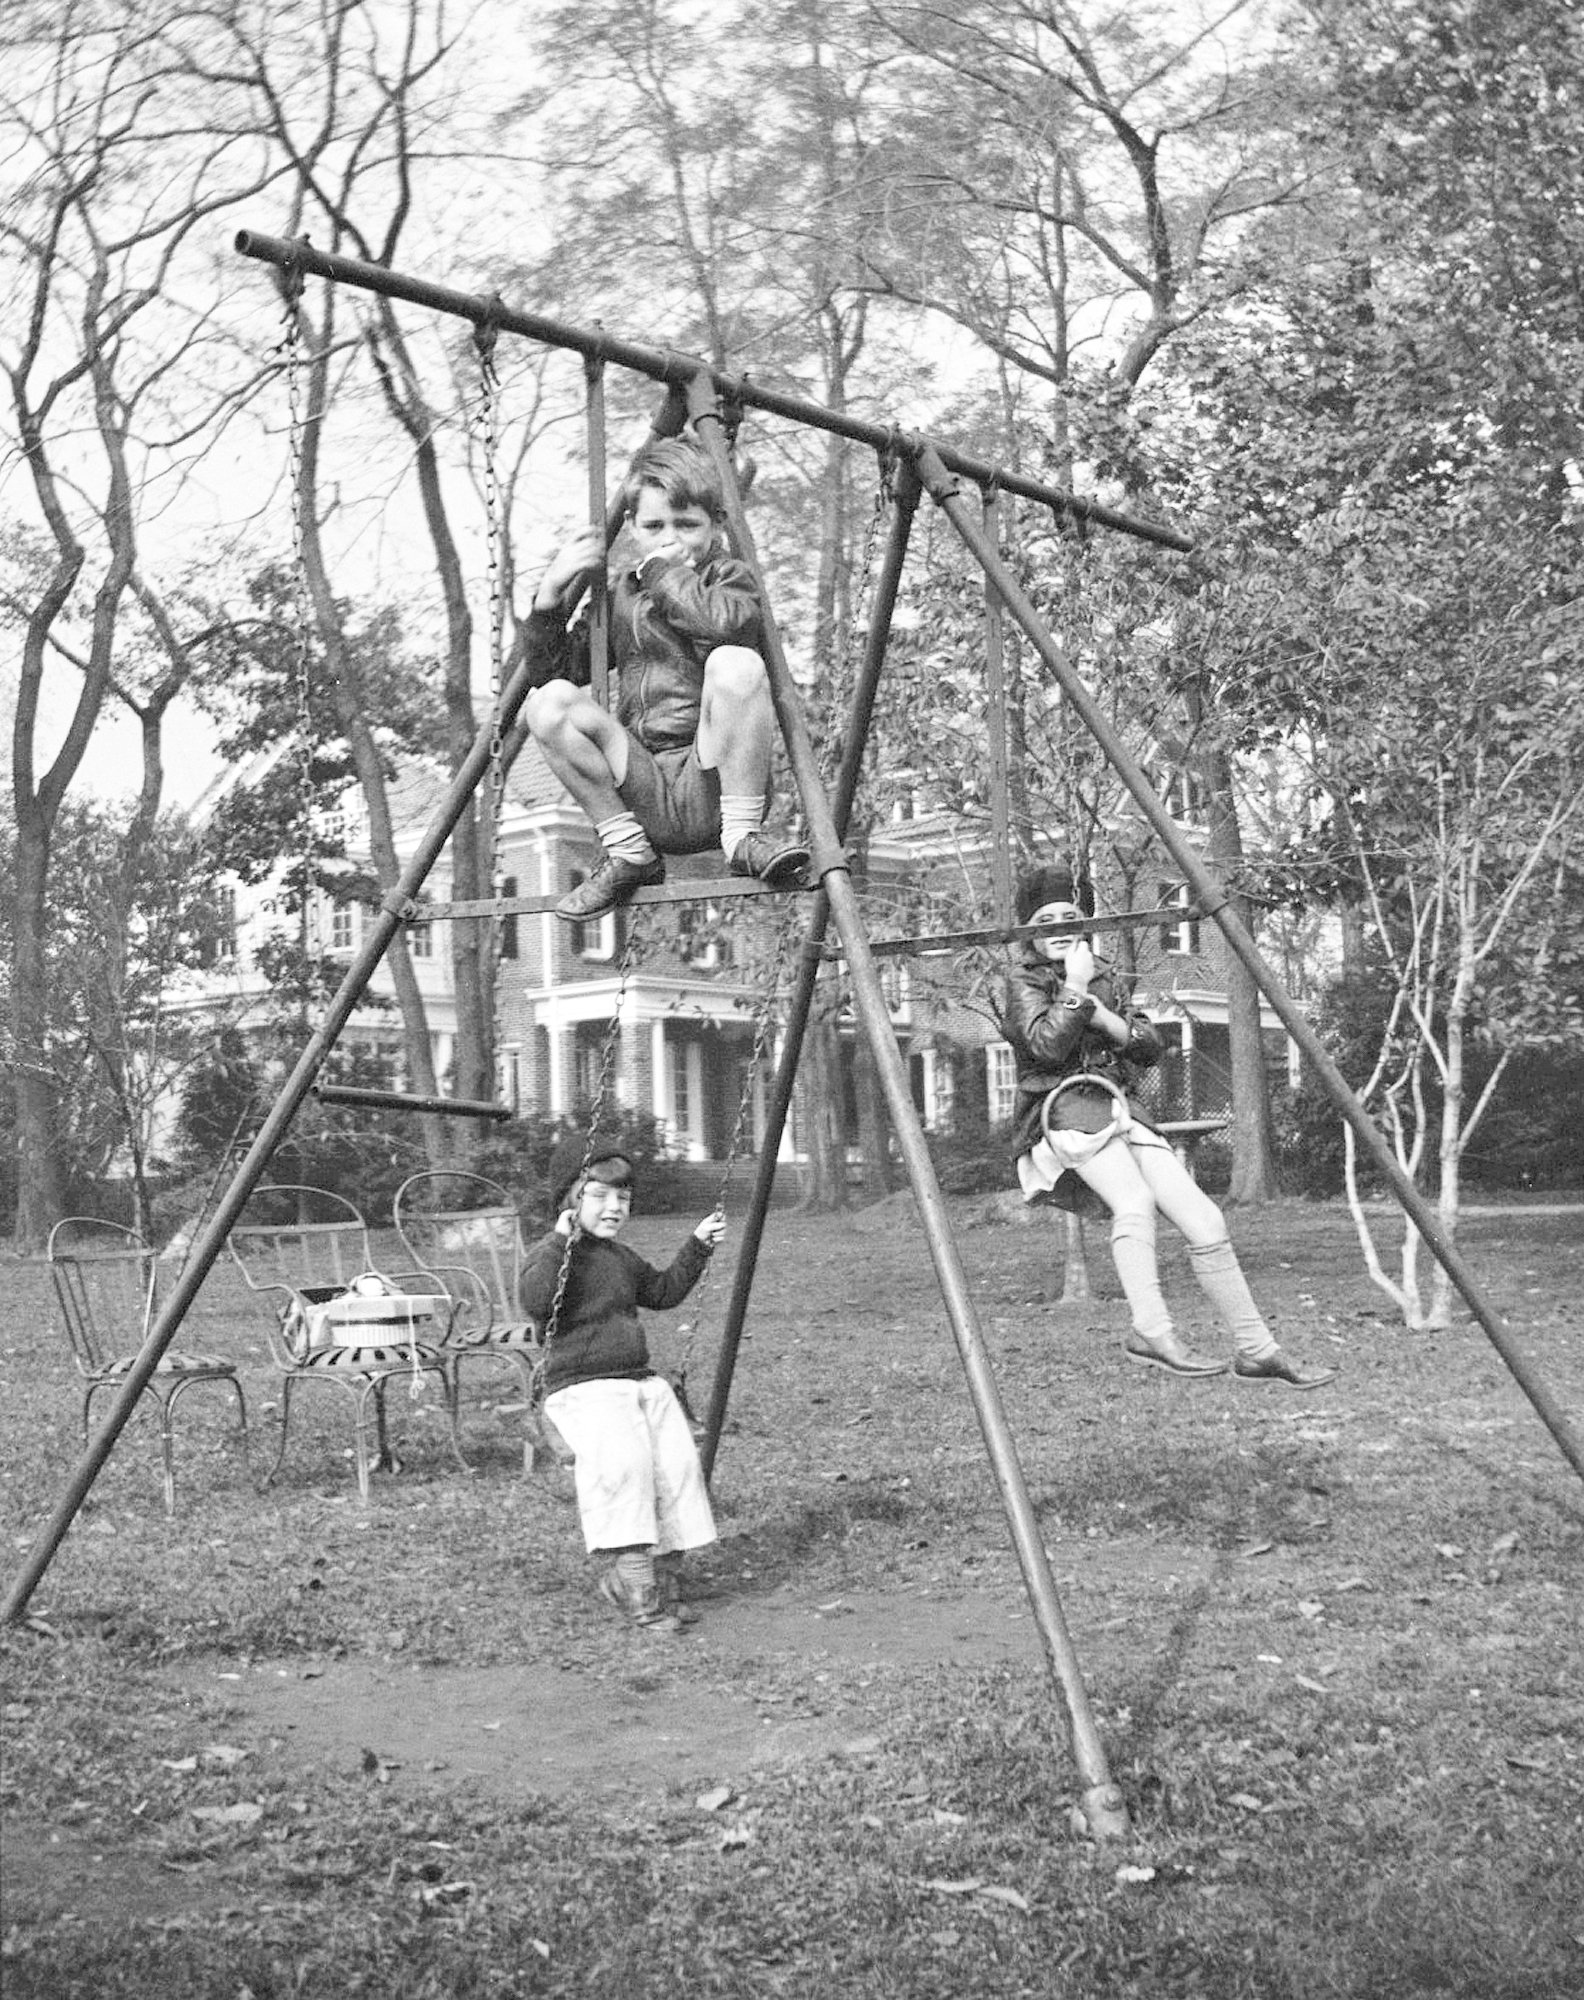 In this October 1934 photo, Robert F. Kennedy, top front, Edward M. Kennedy, left rear, and Jean Kennedy, right rear, play on a swing set in Bronxville, New York.